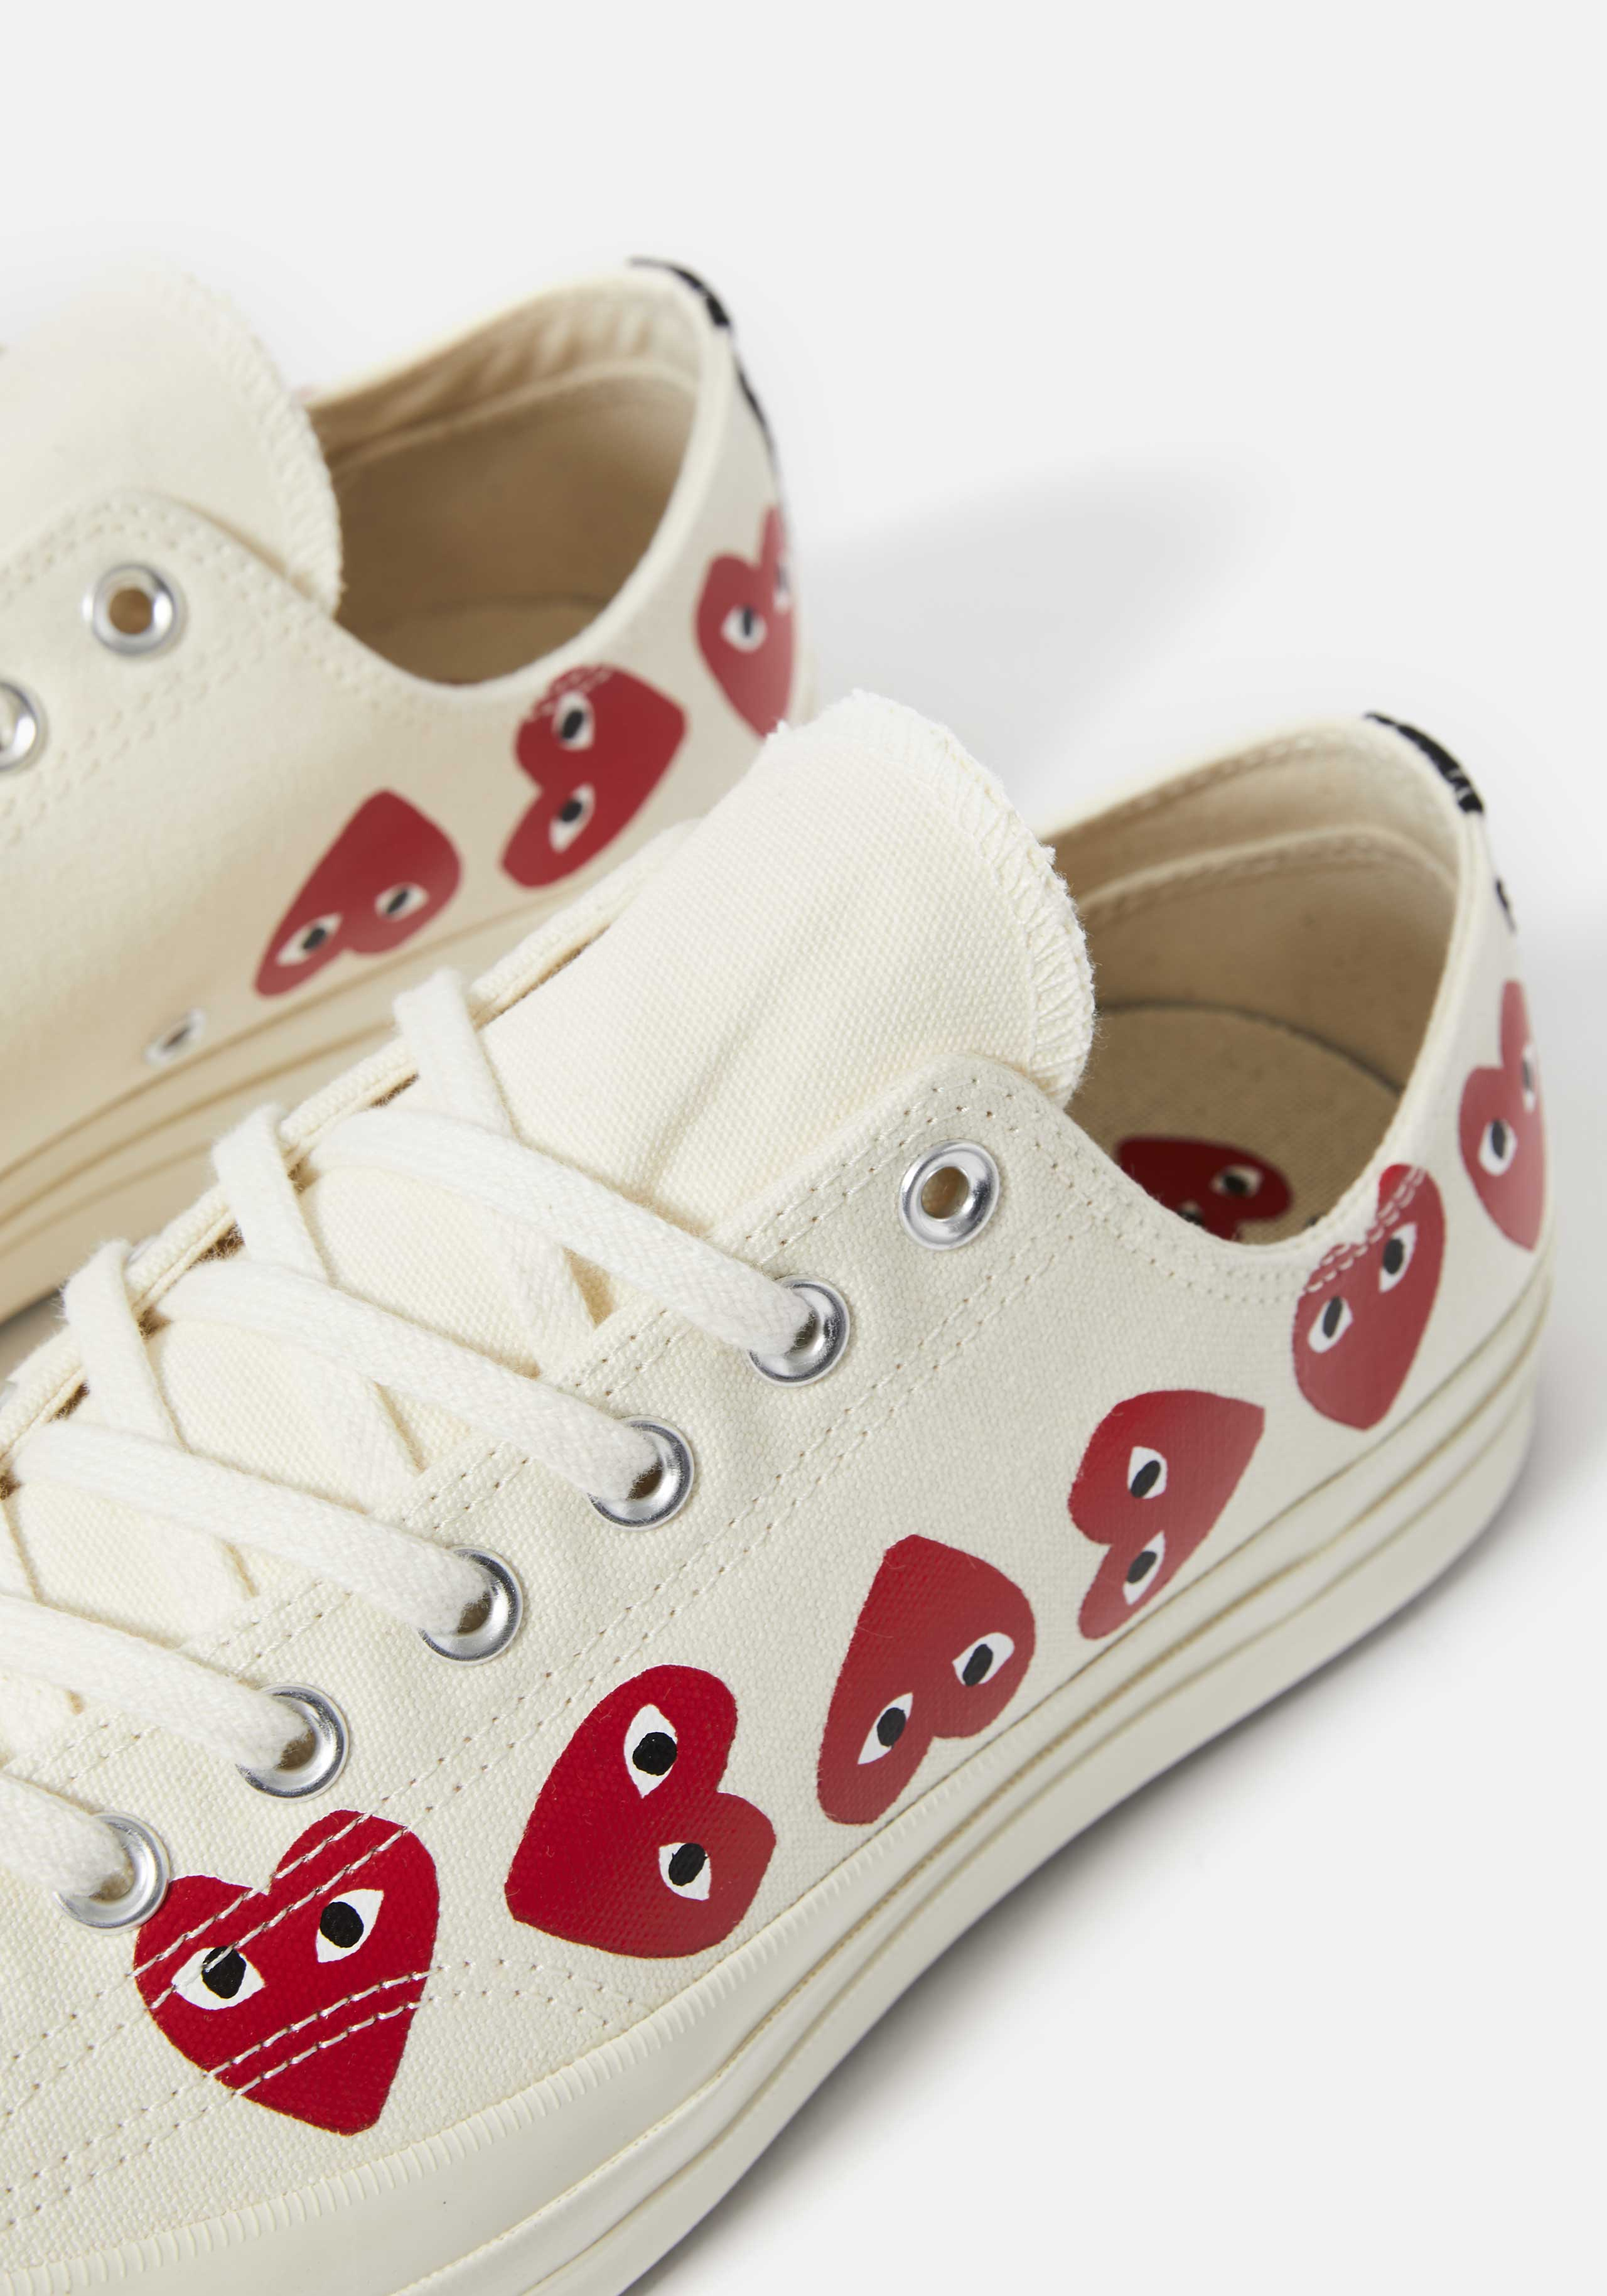 cdg play converse multi heart 70's low 3